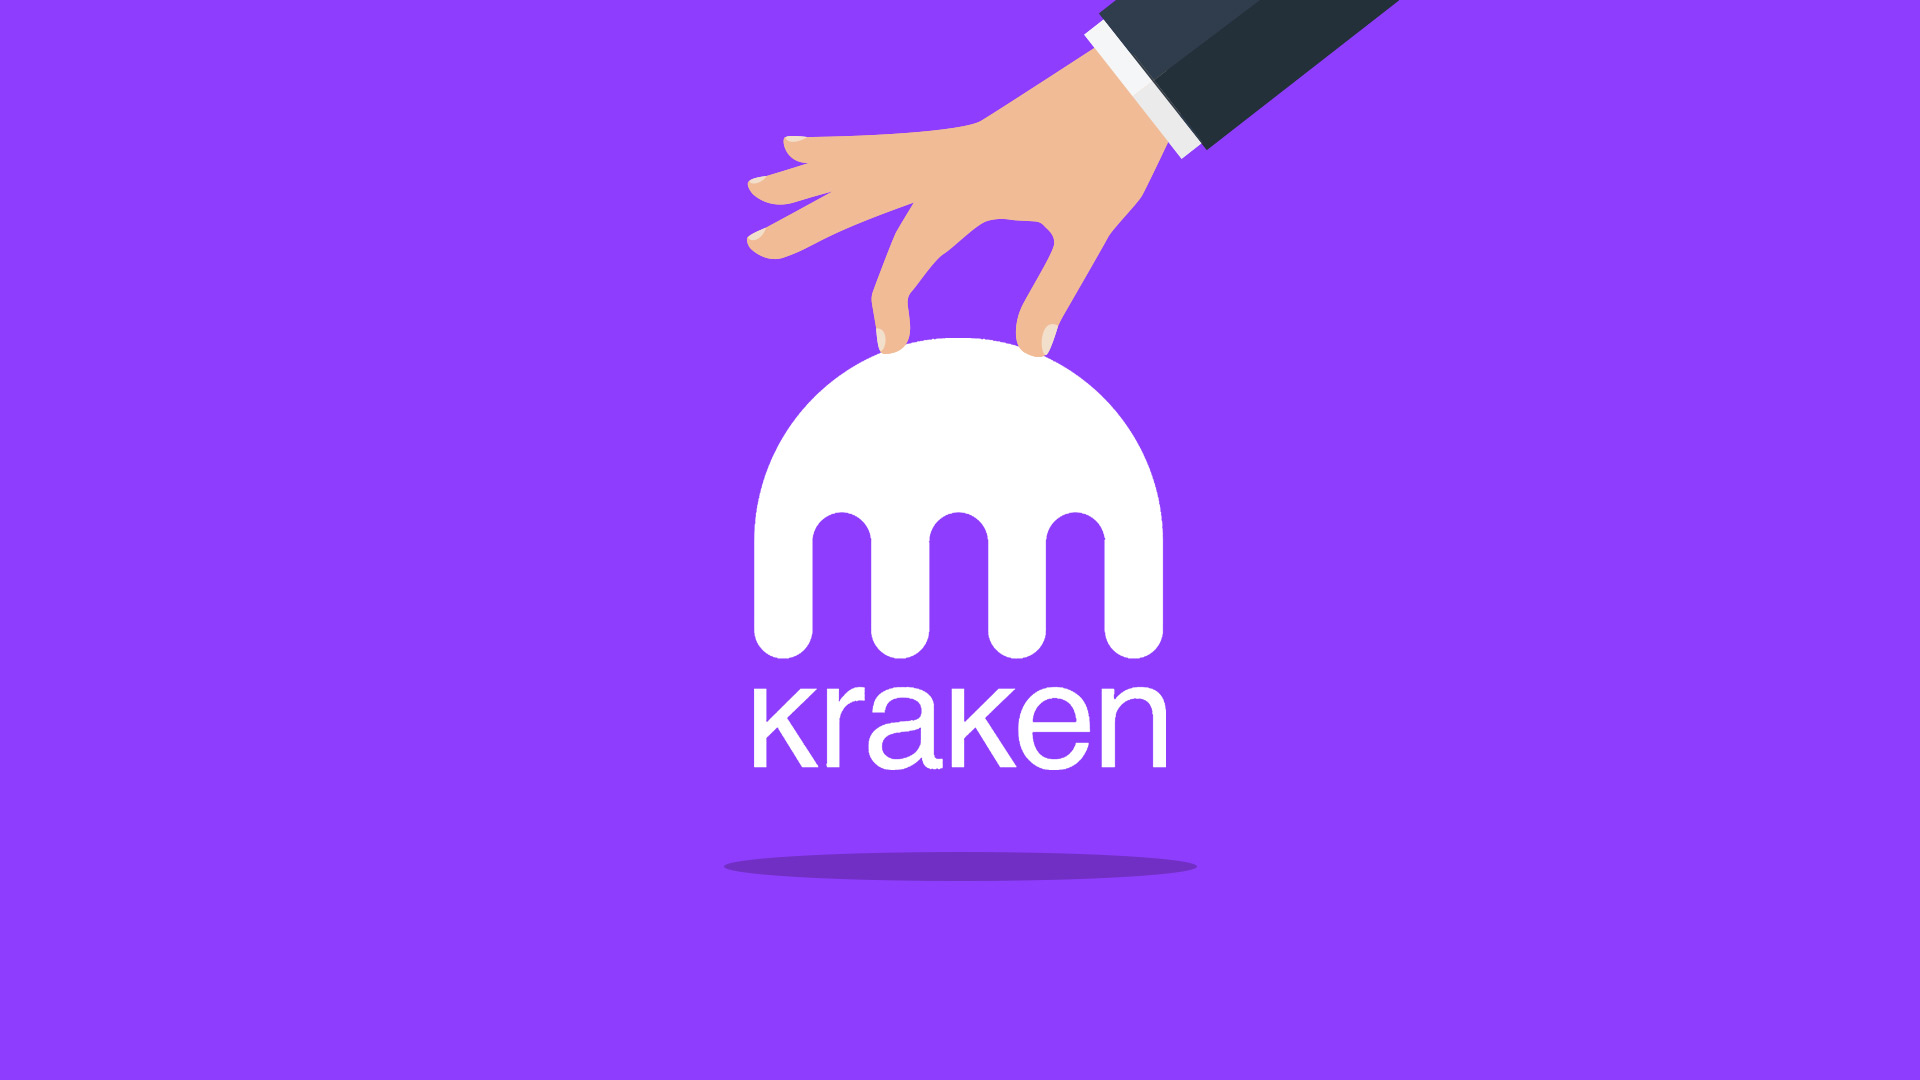 IRS must refile its petition to request information from Kraken  image